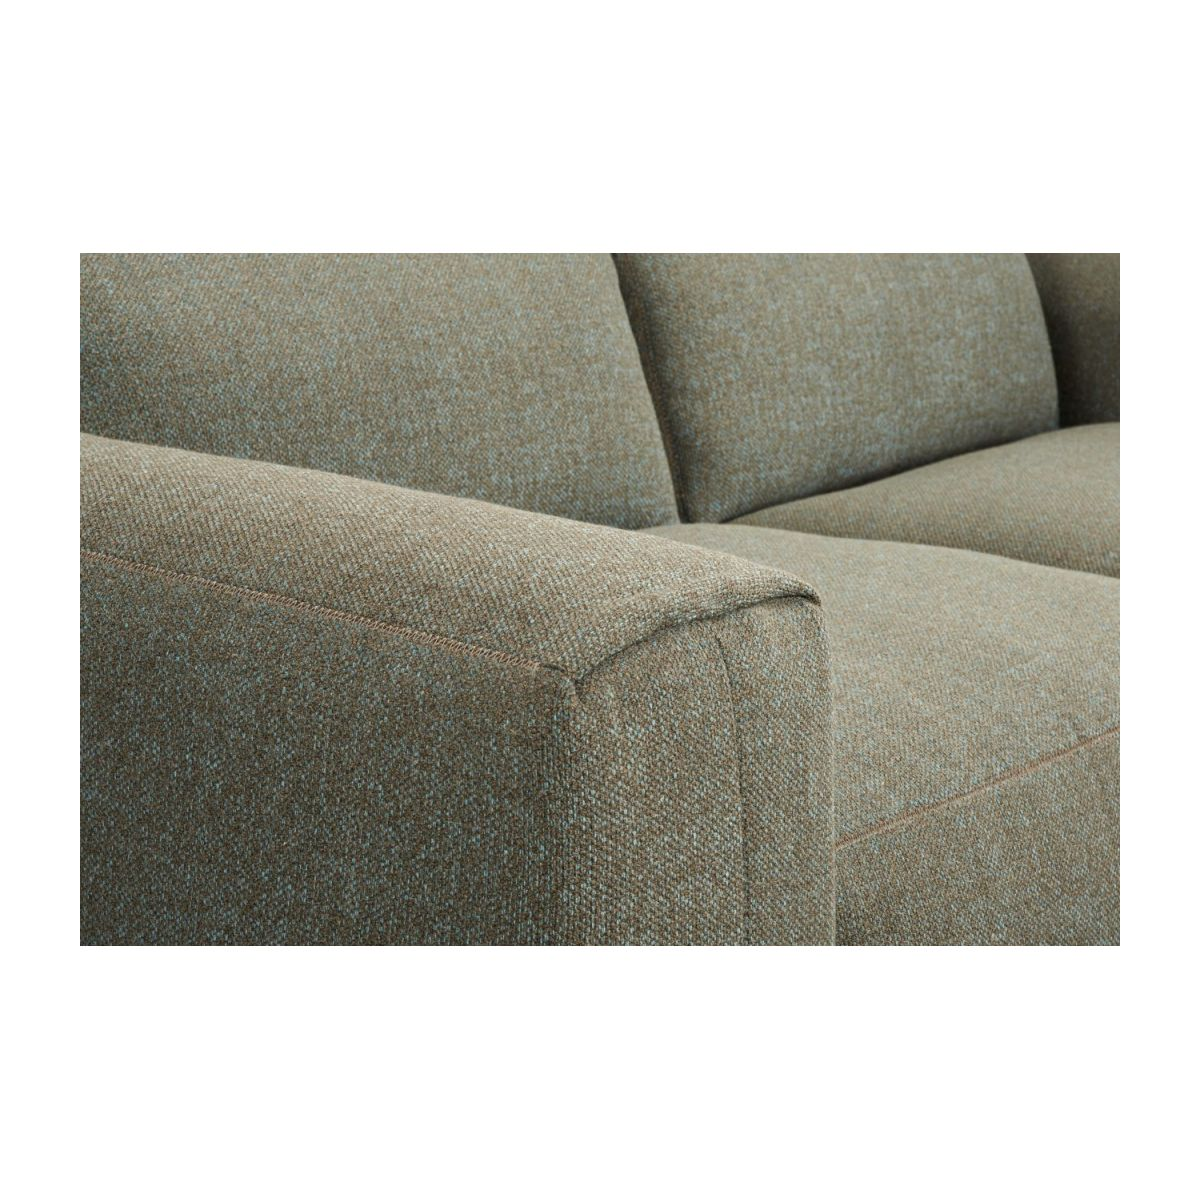 4 seater sofa in Lecce fabric, slade grey n°6